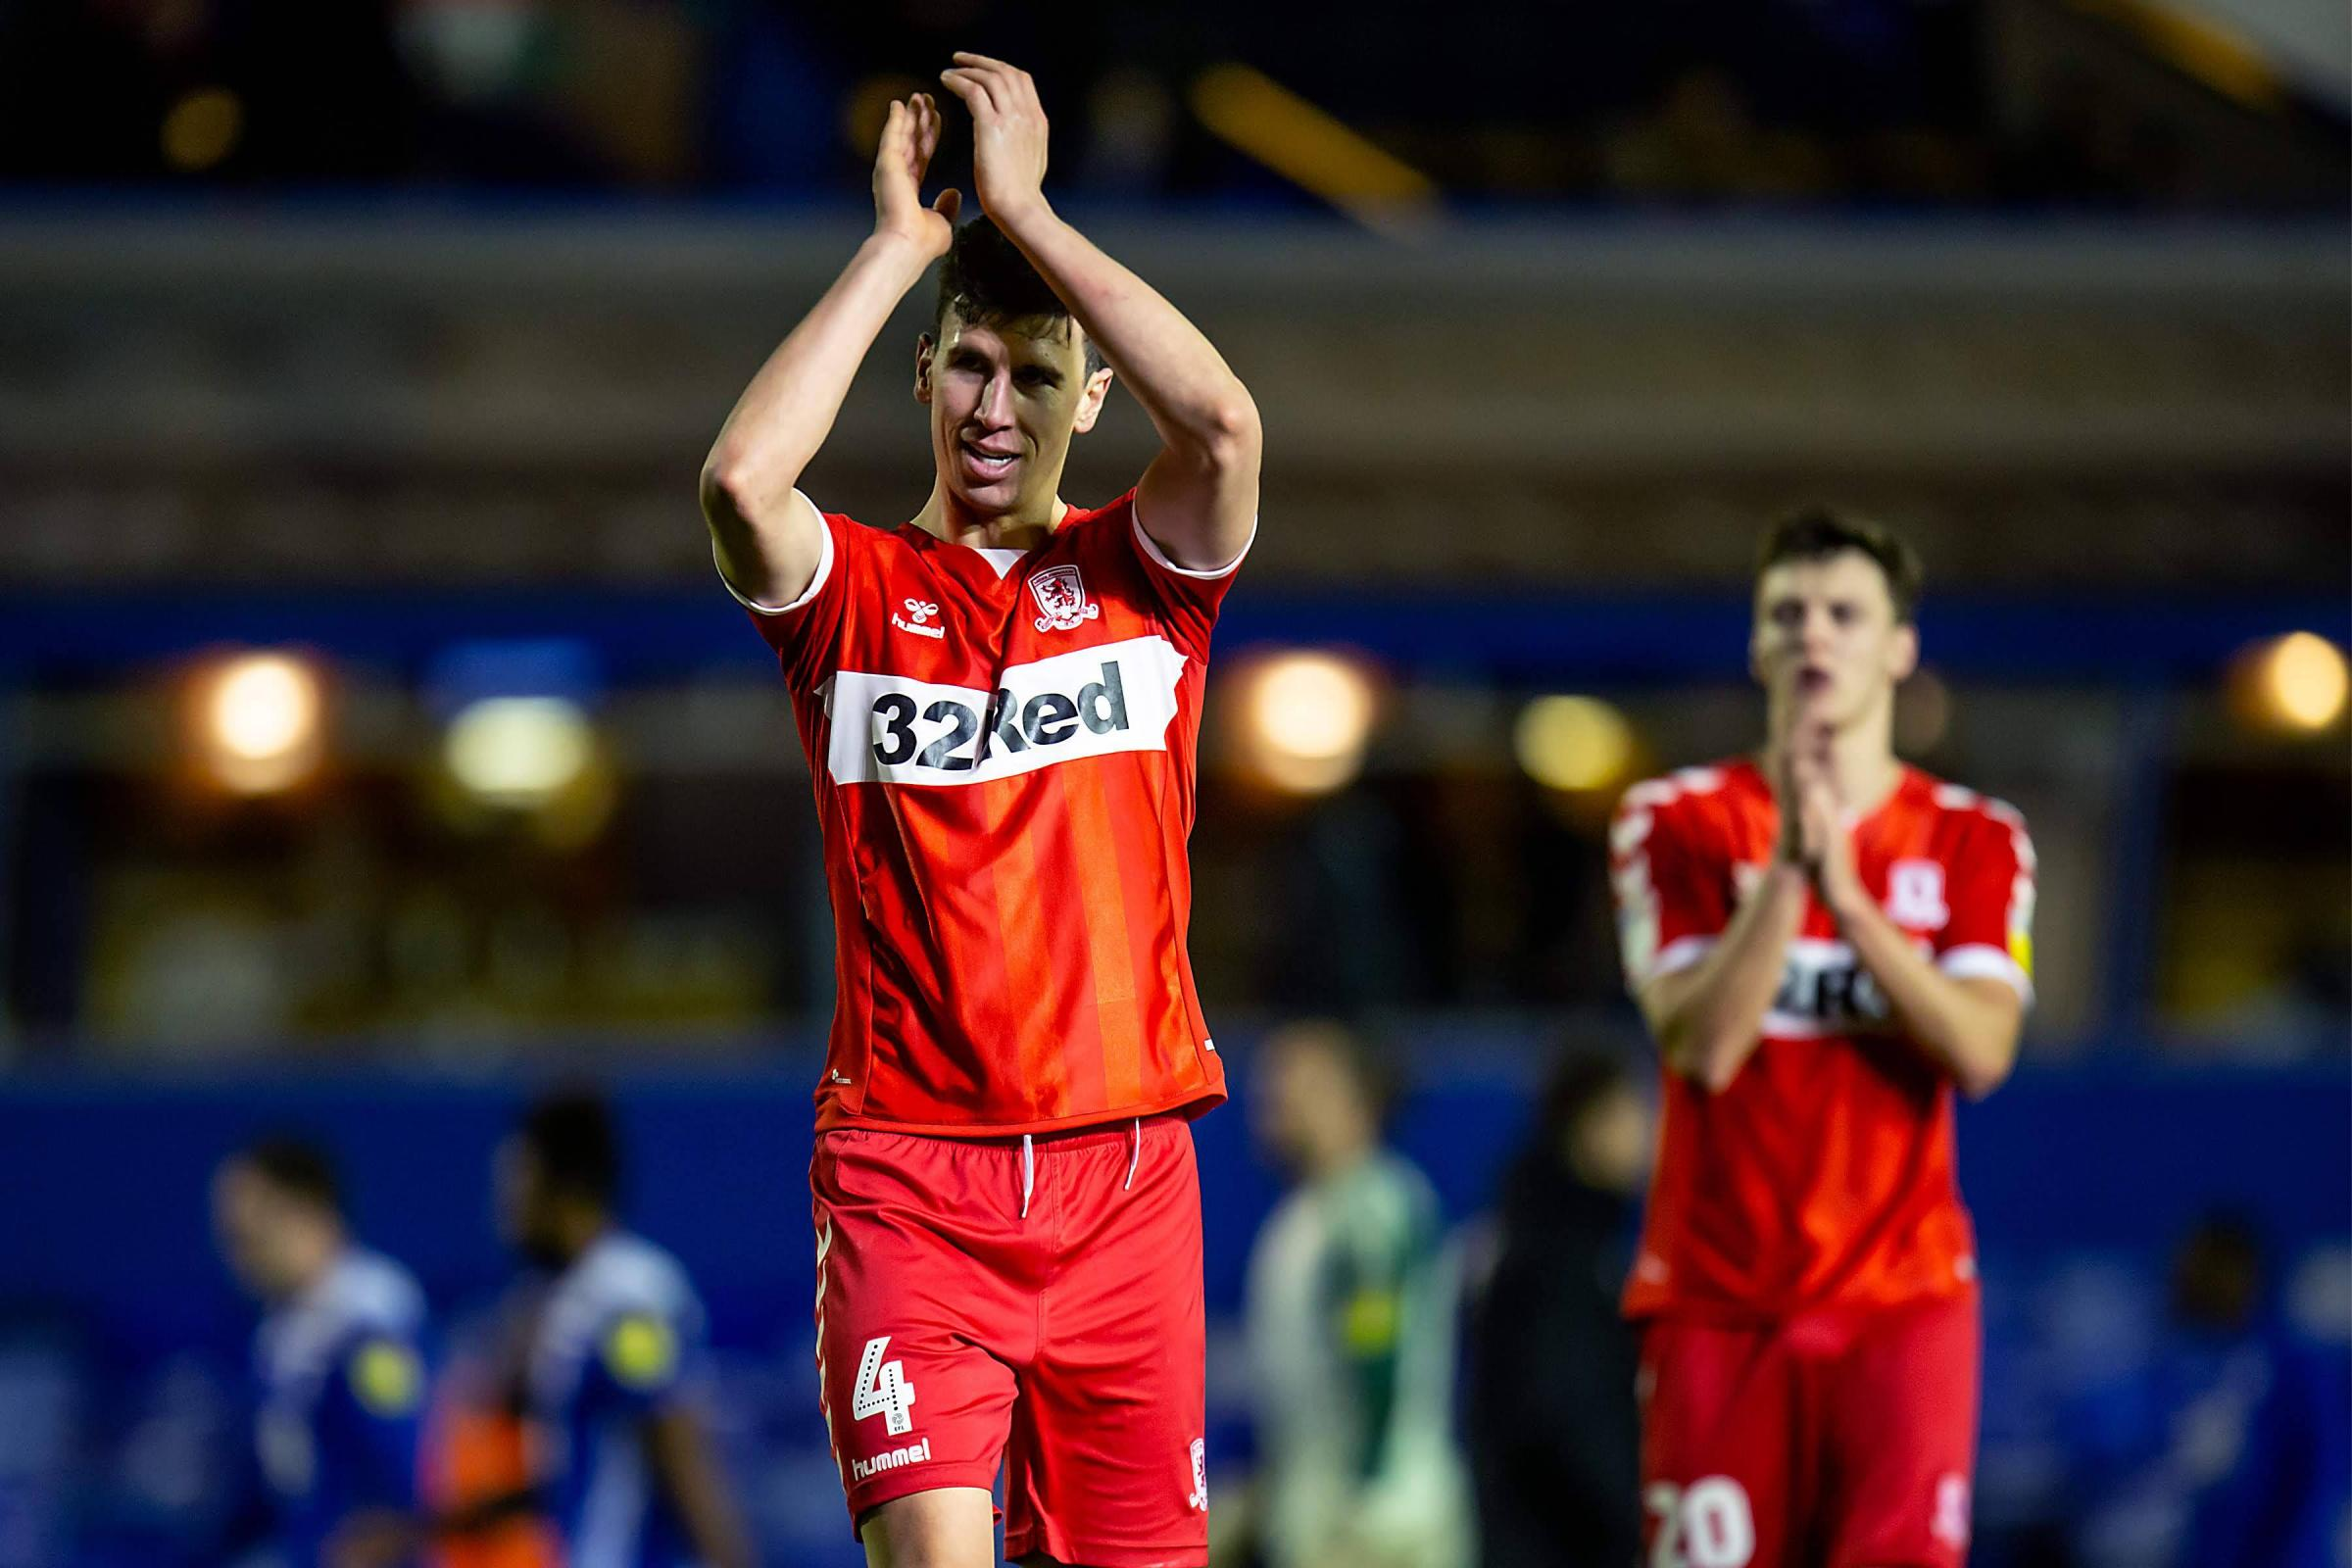 Slip up? What slip up? Top two has always been target insists Boro's Daniel Ayala